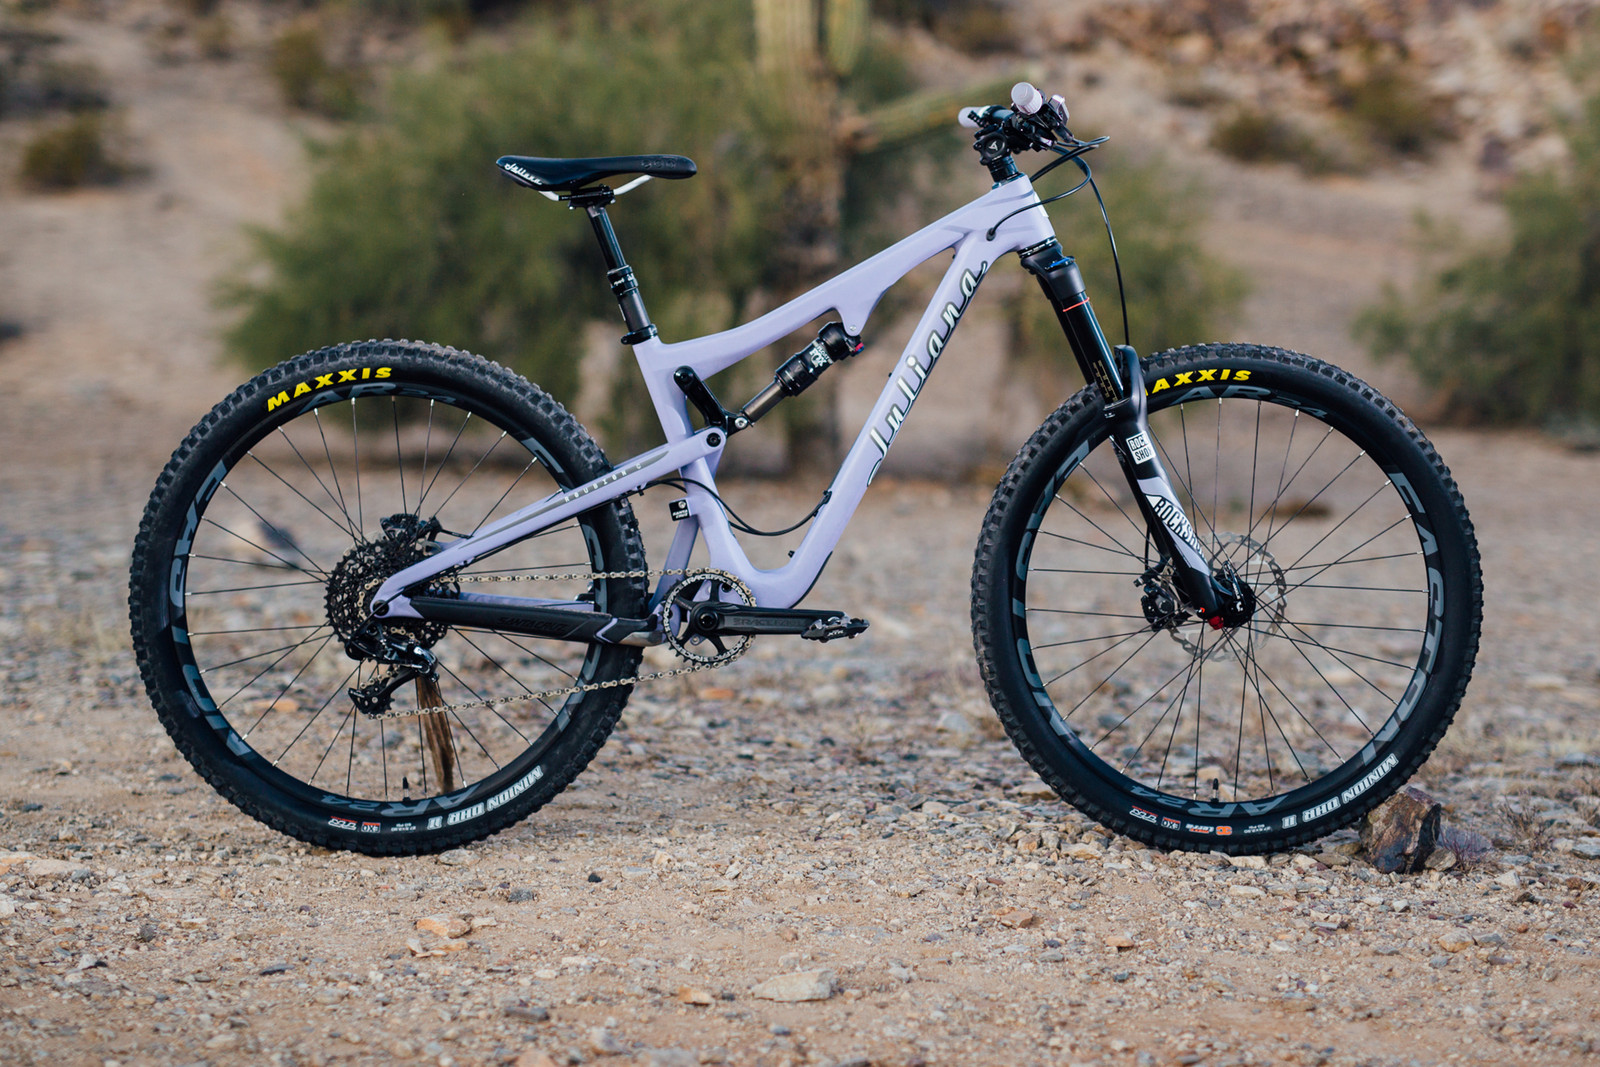 2016 Juliana Roubion C S - 17 Bikes Tested - 2016 Vital MTB Test Sessions - Mountain Biking Pictures - Vital MTB